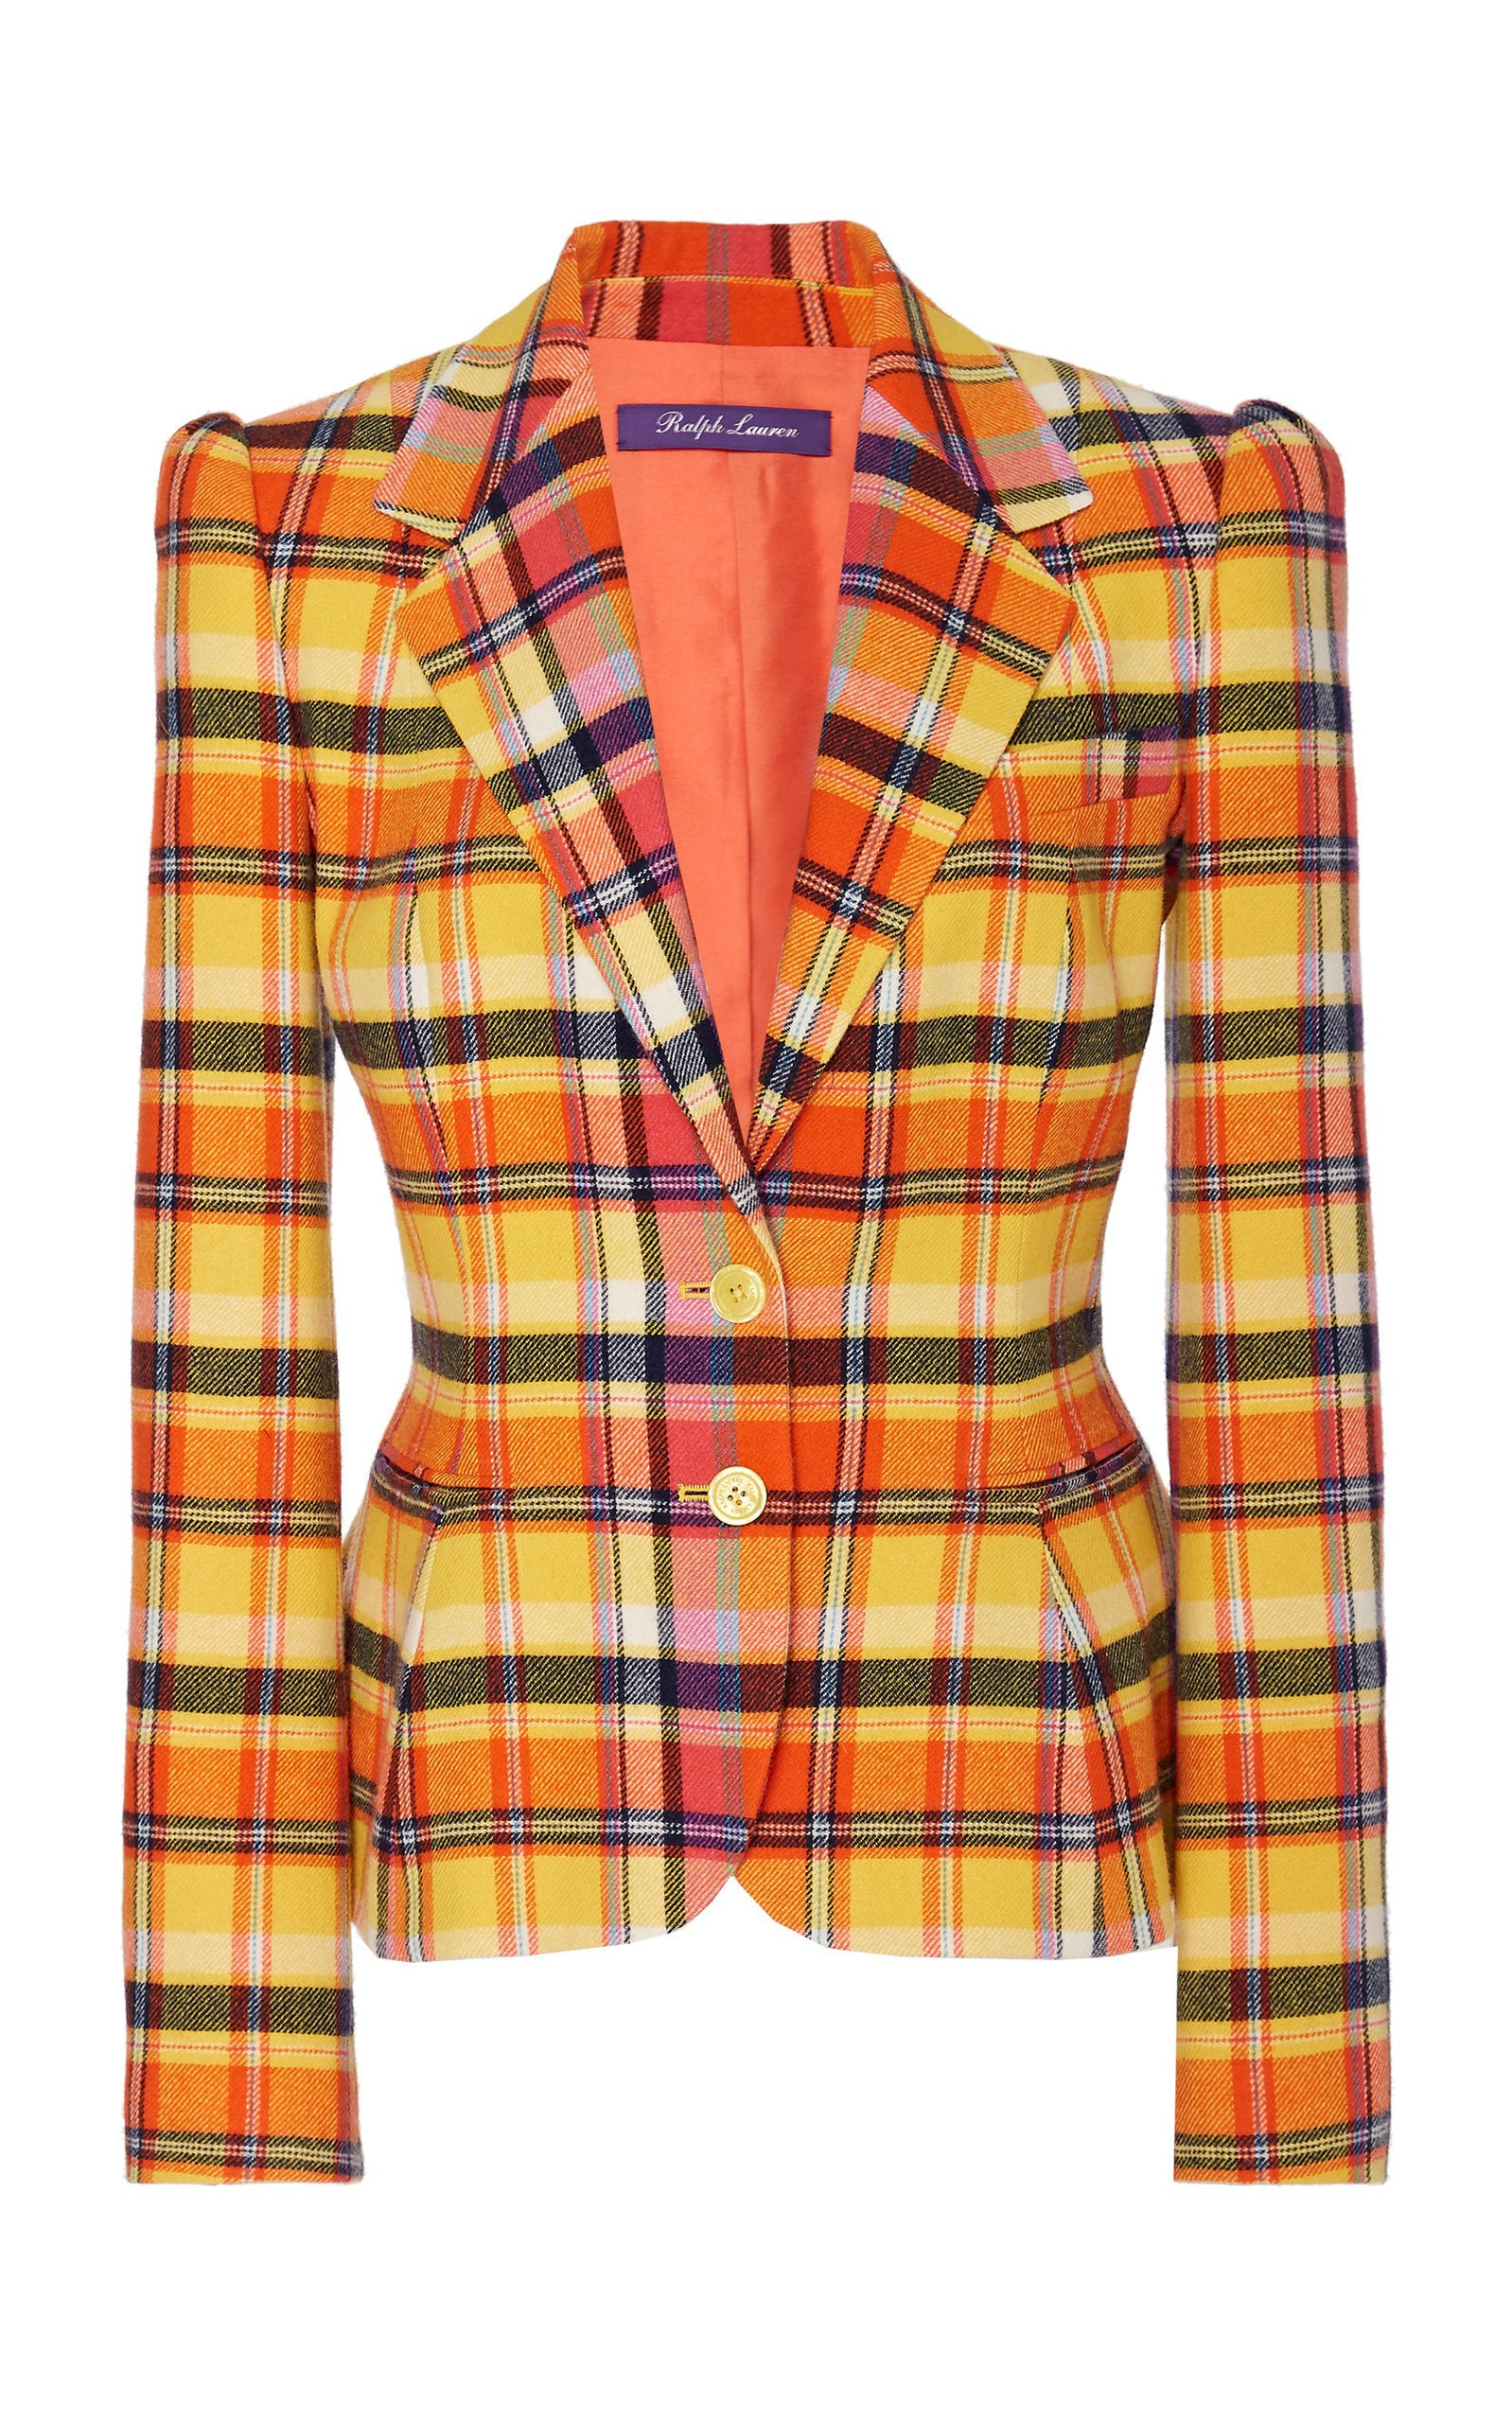 Ralph Lauren Eloise Plaid Wool-Blend Jacket